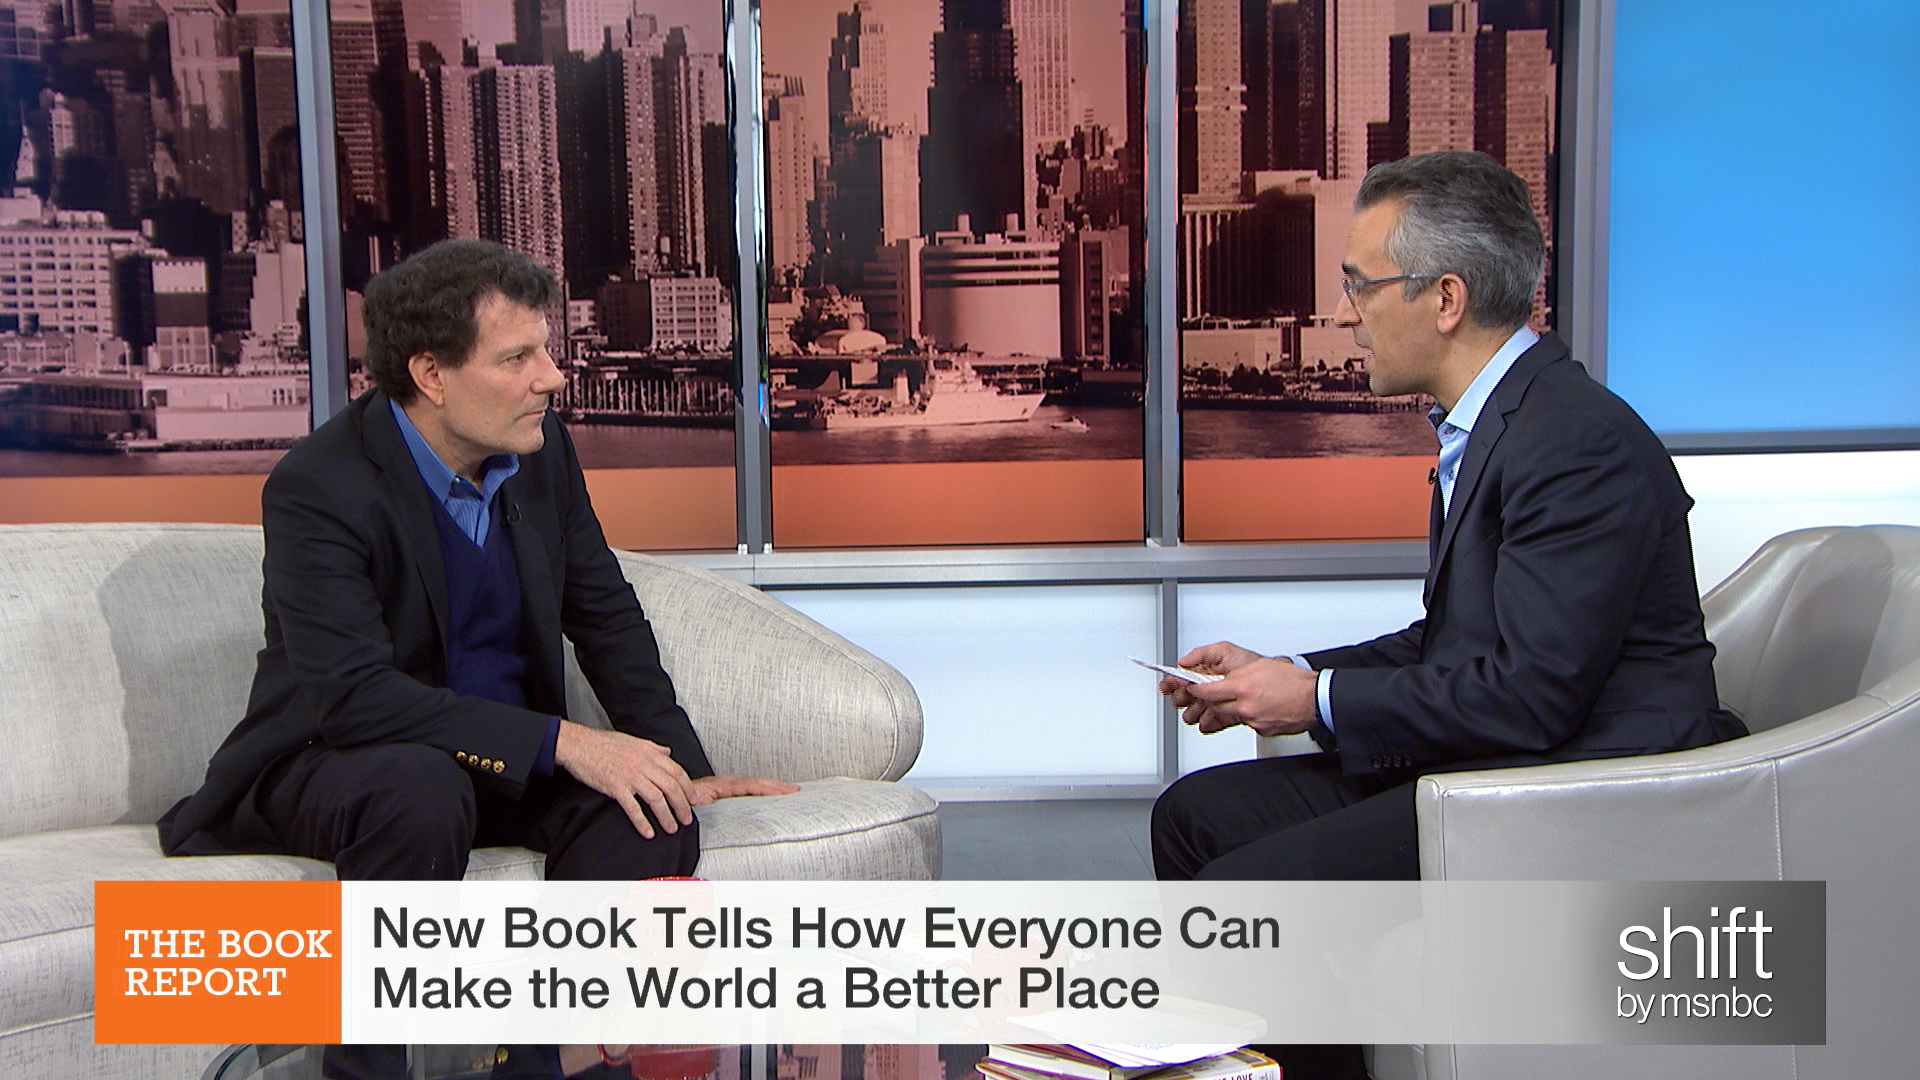 Book explores improving the world